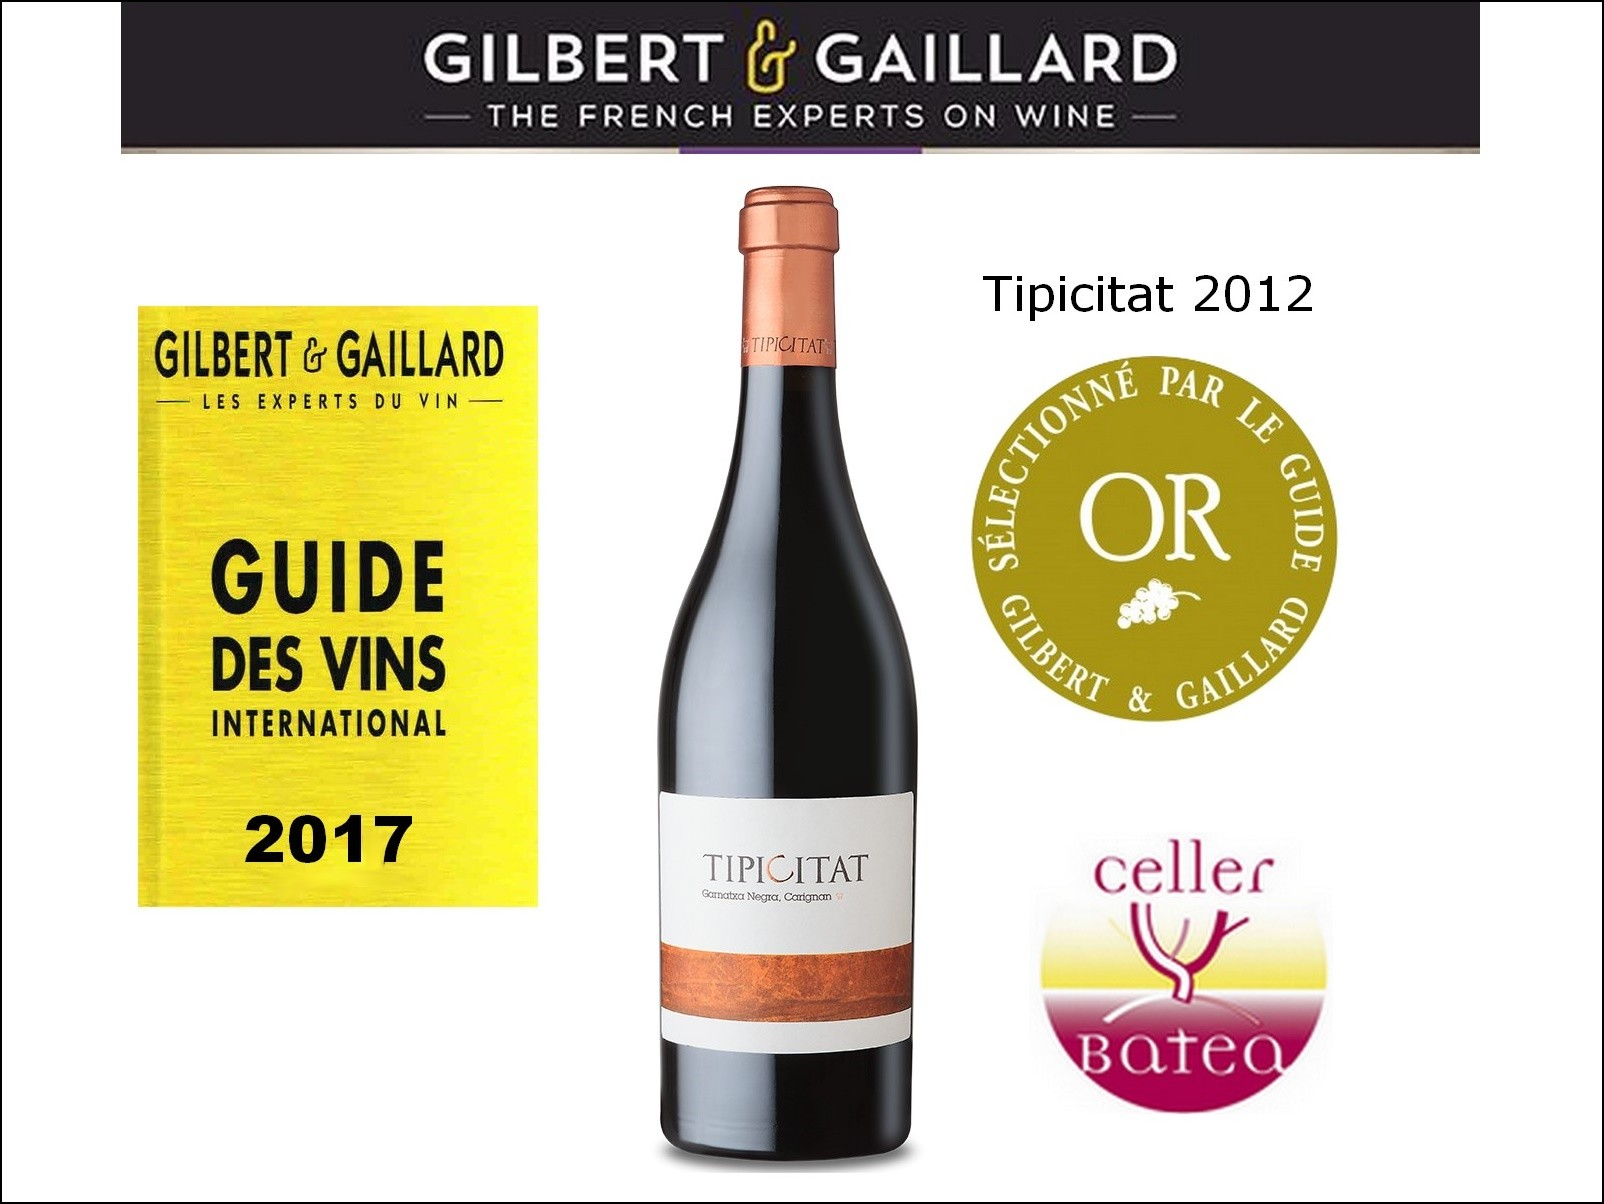 gilbert y galliard 2017